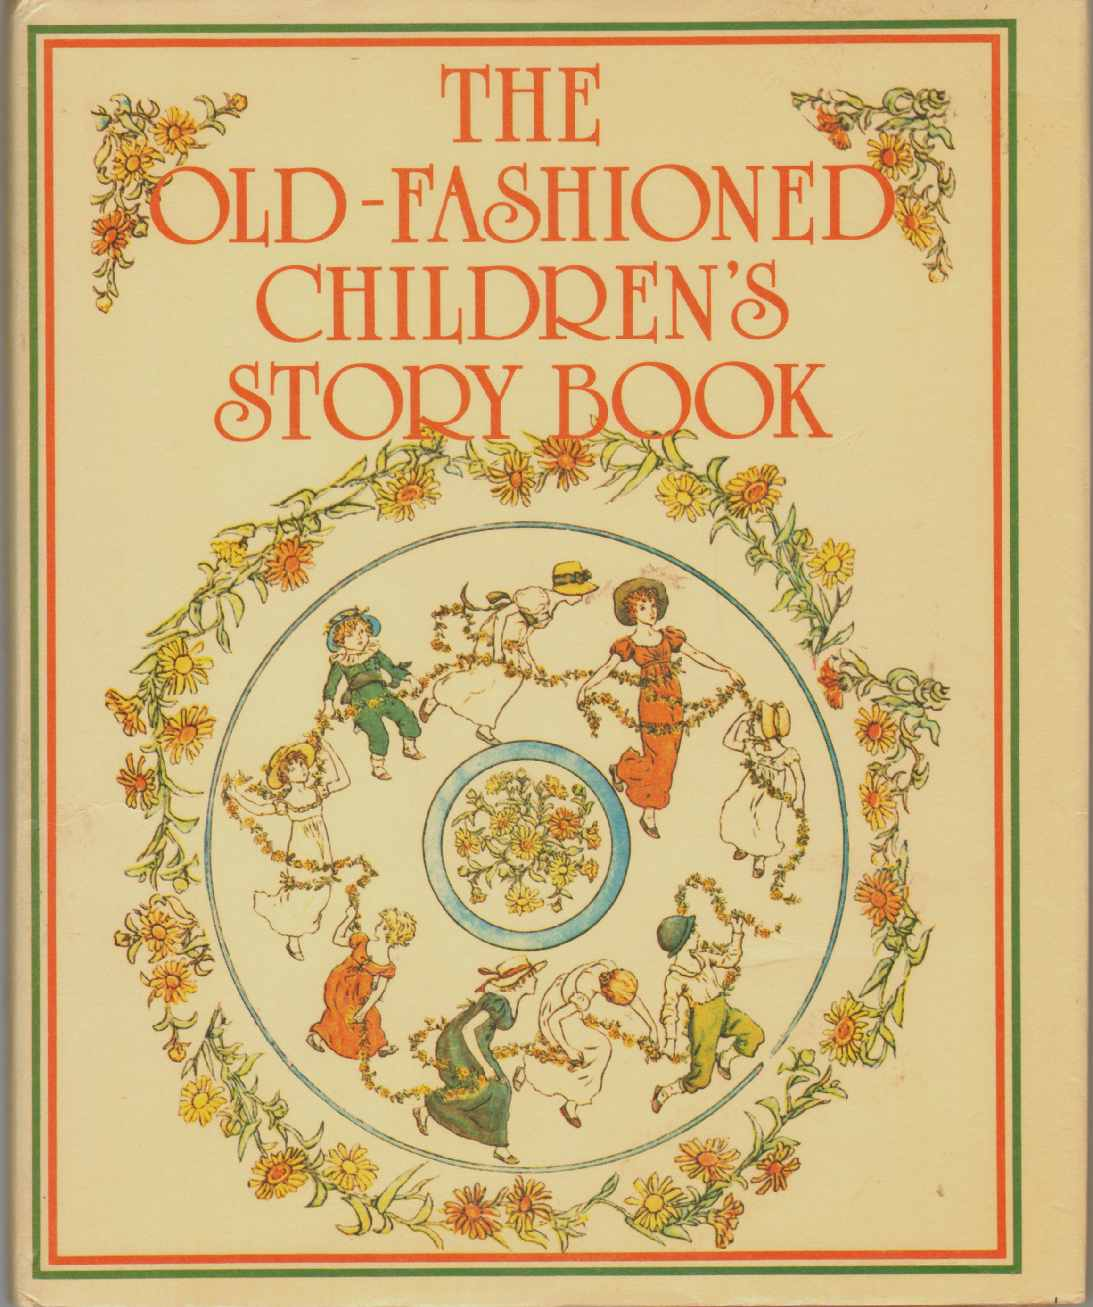 THE OLD-FASHIONED CHILDREN'S STORYBOOK, Flax, Zena; edited and designed by